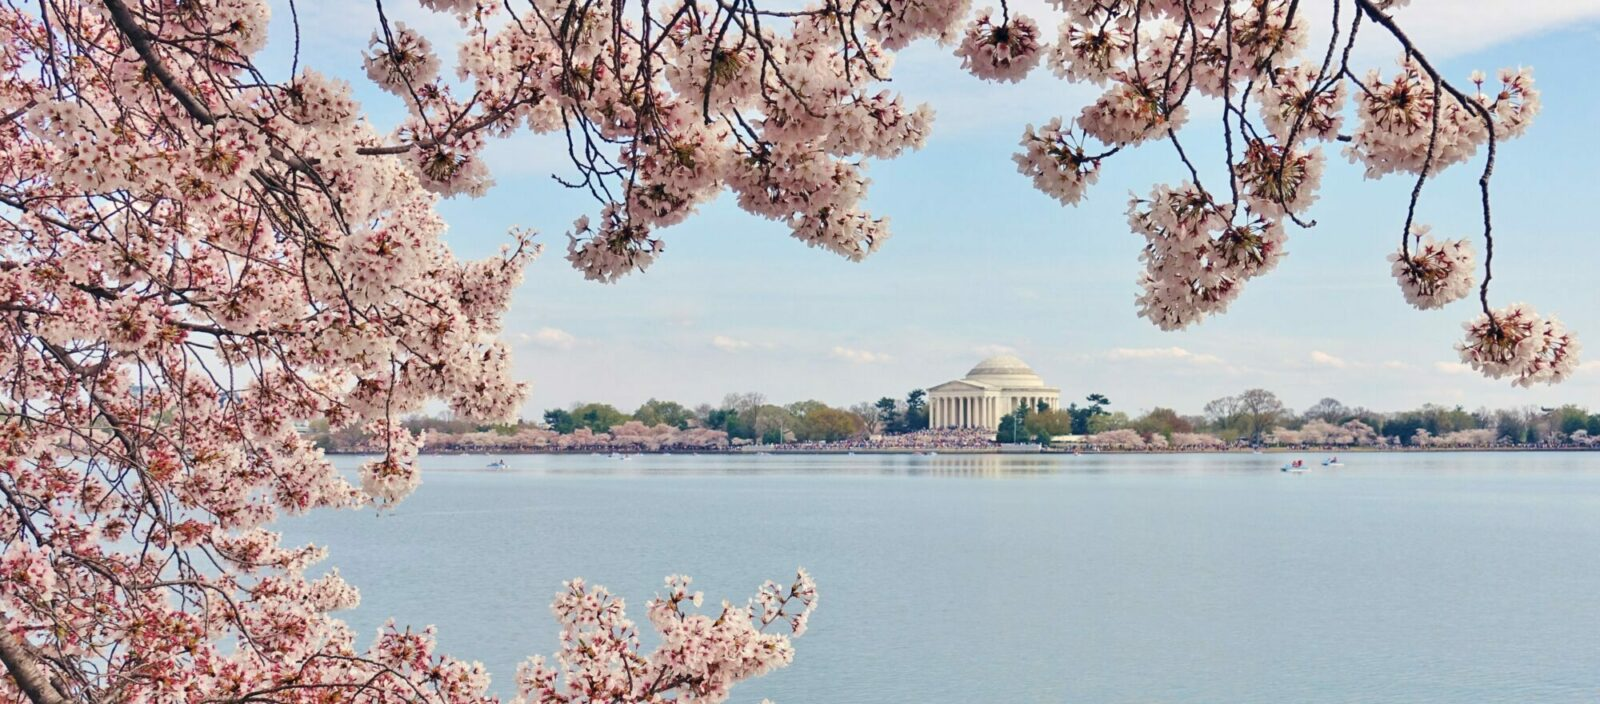 View of the Jefferson Memorial, a landmark monument by the Tidal Basin during the cherry blossom season in the nation's capital.